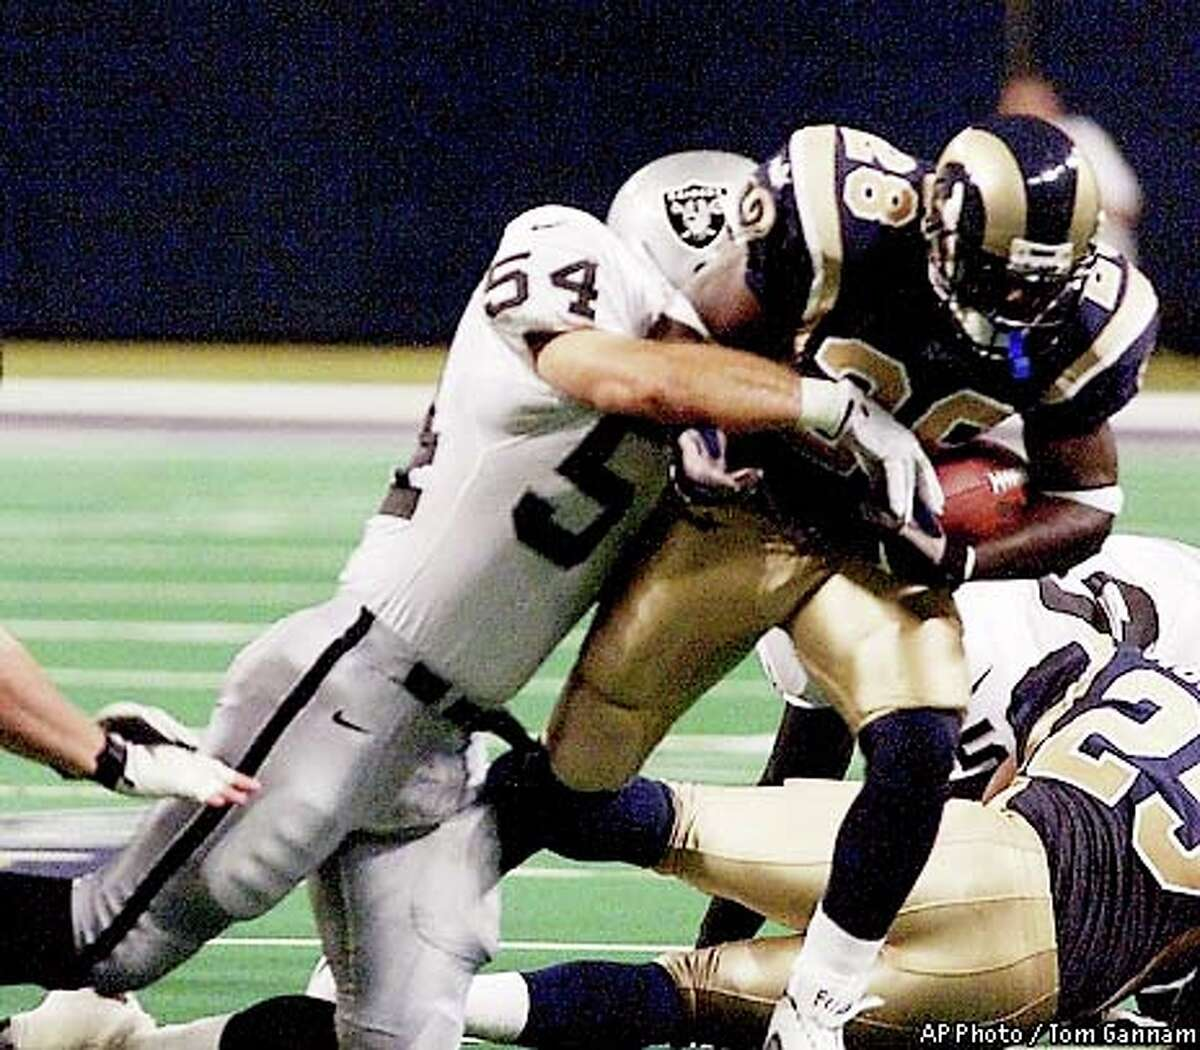 St. Louis Rams Marshall Faulk tried to break the tackle of Oakland Raiders Greg Biekert (54) in the first quarter of a preseason game Saturday, August 5, 2000, in St. Louis. Biekert has led the Raiders in tackles the past two years and four of the past six seasons. Associated Press photo by Tom Gannam